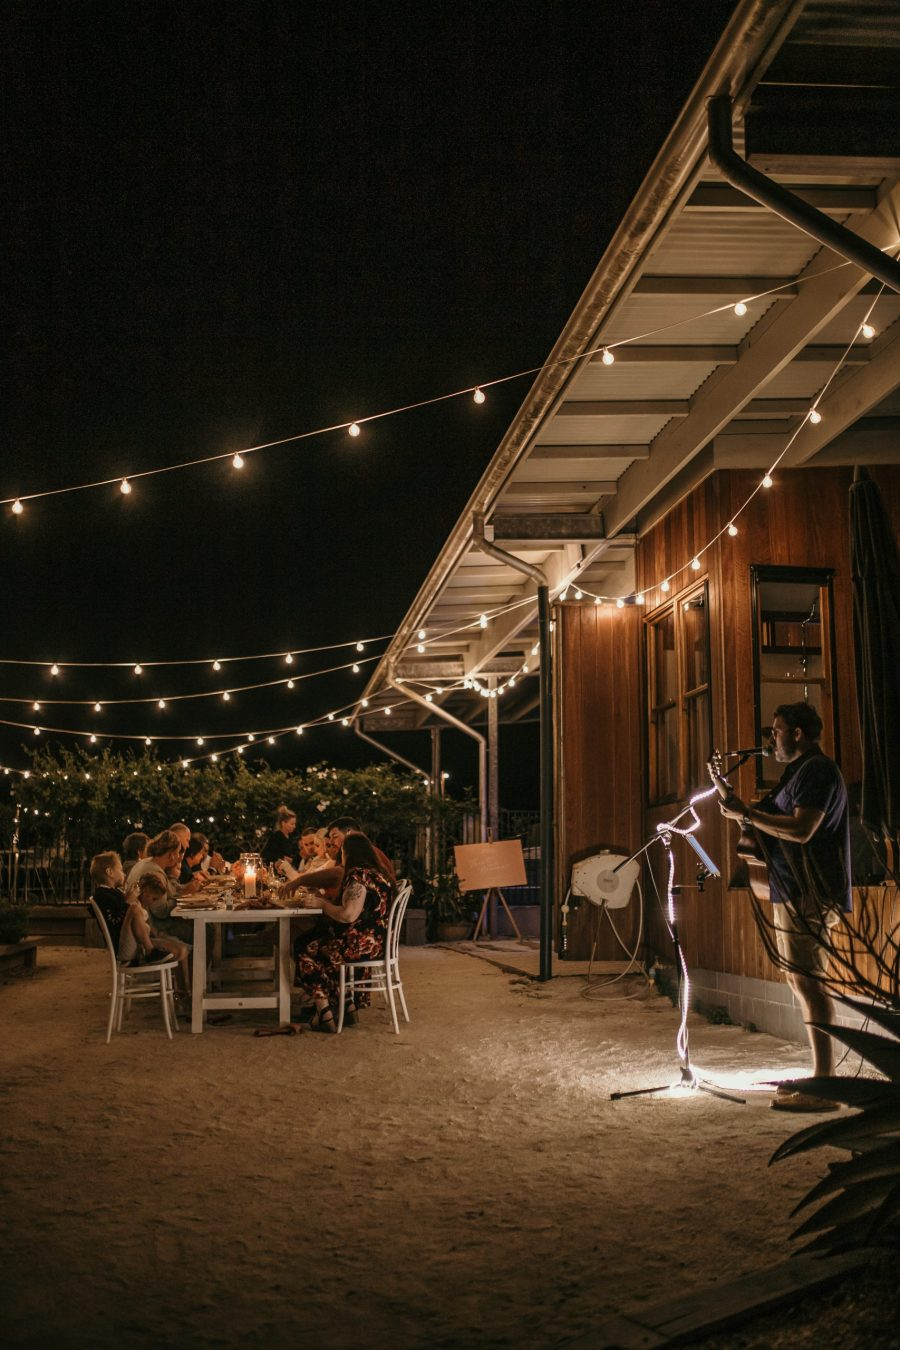 Guests enjoy dinner while musician plays guitar.